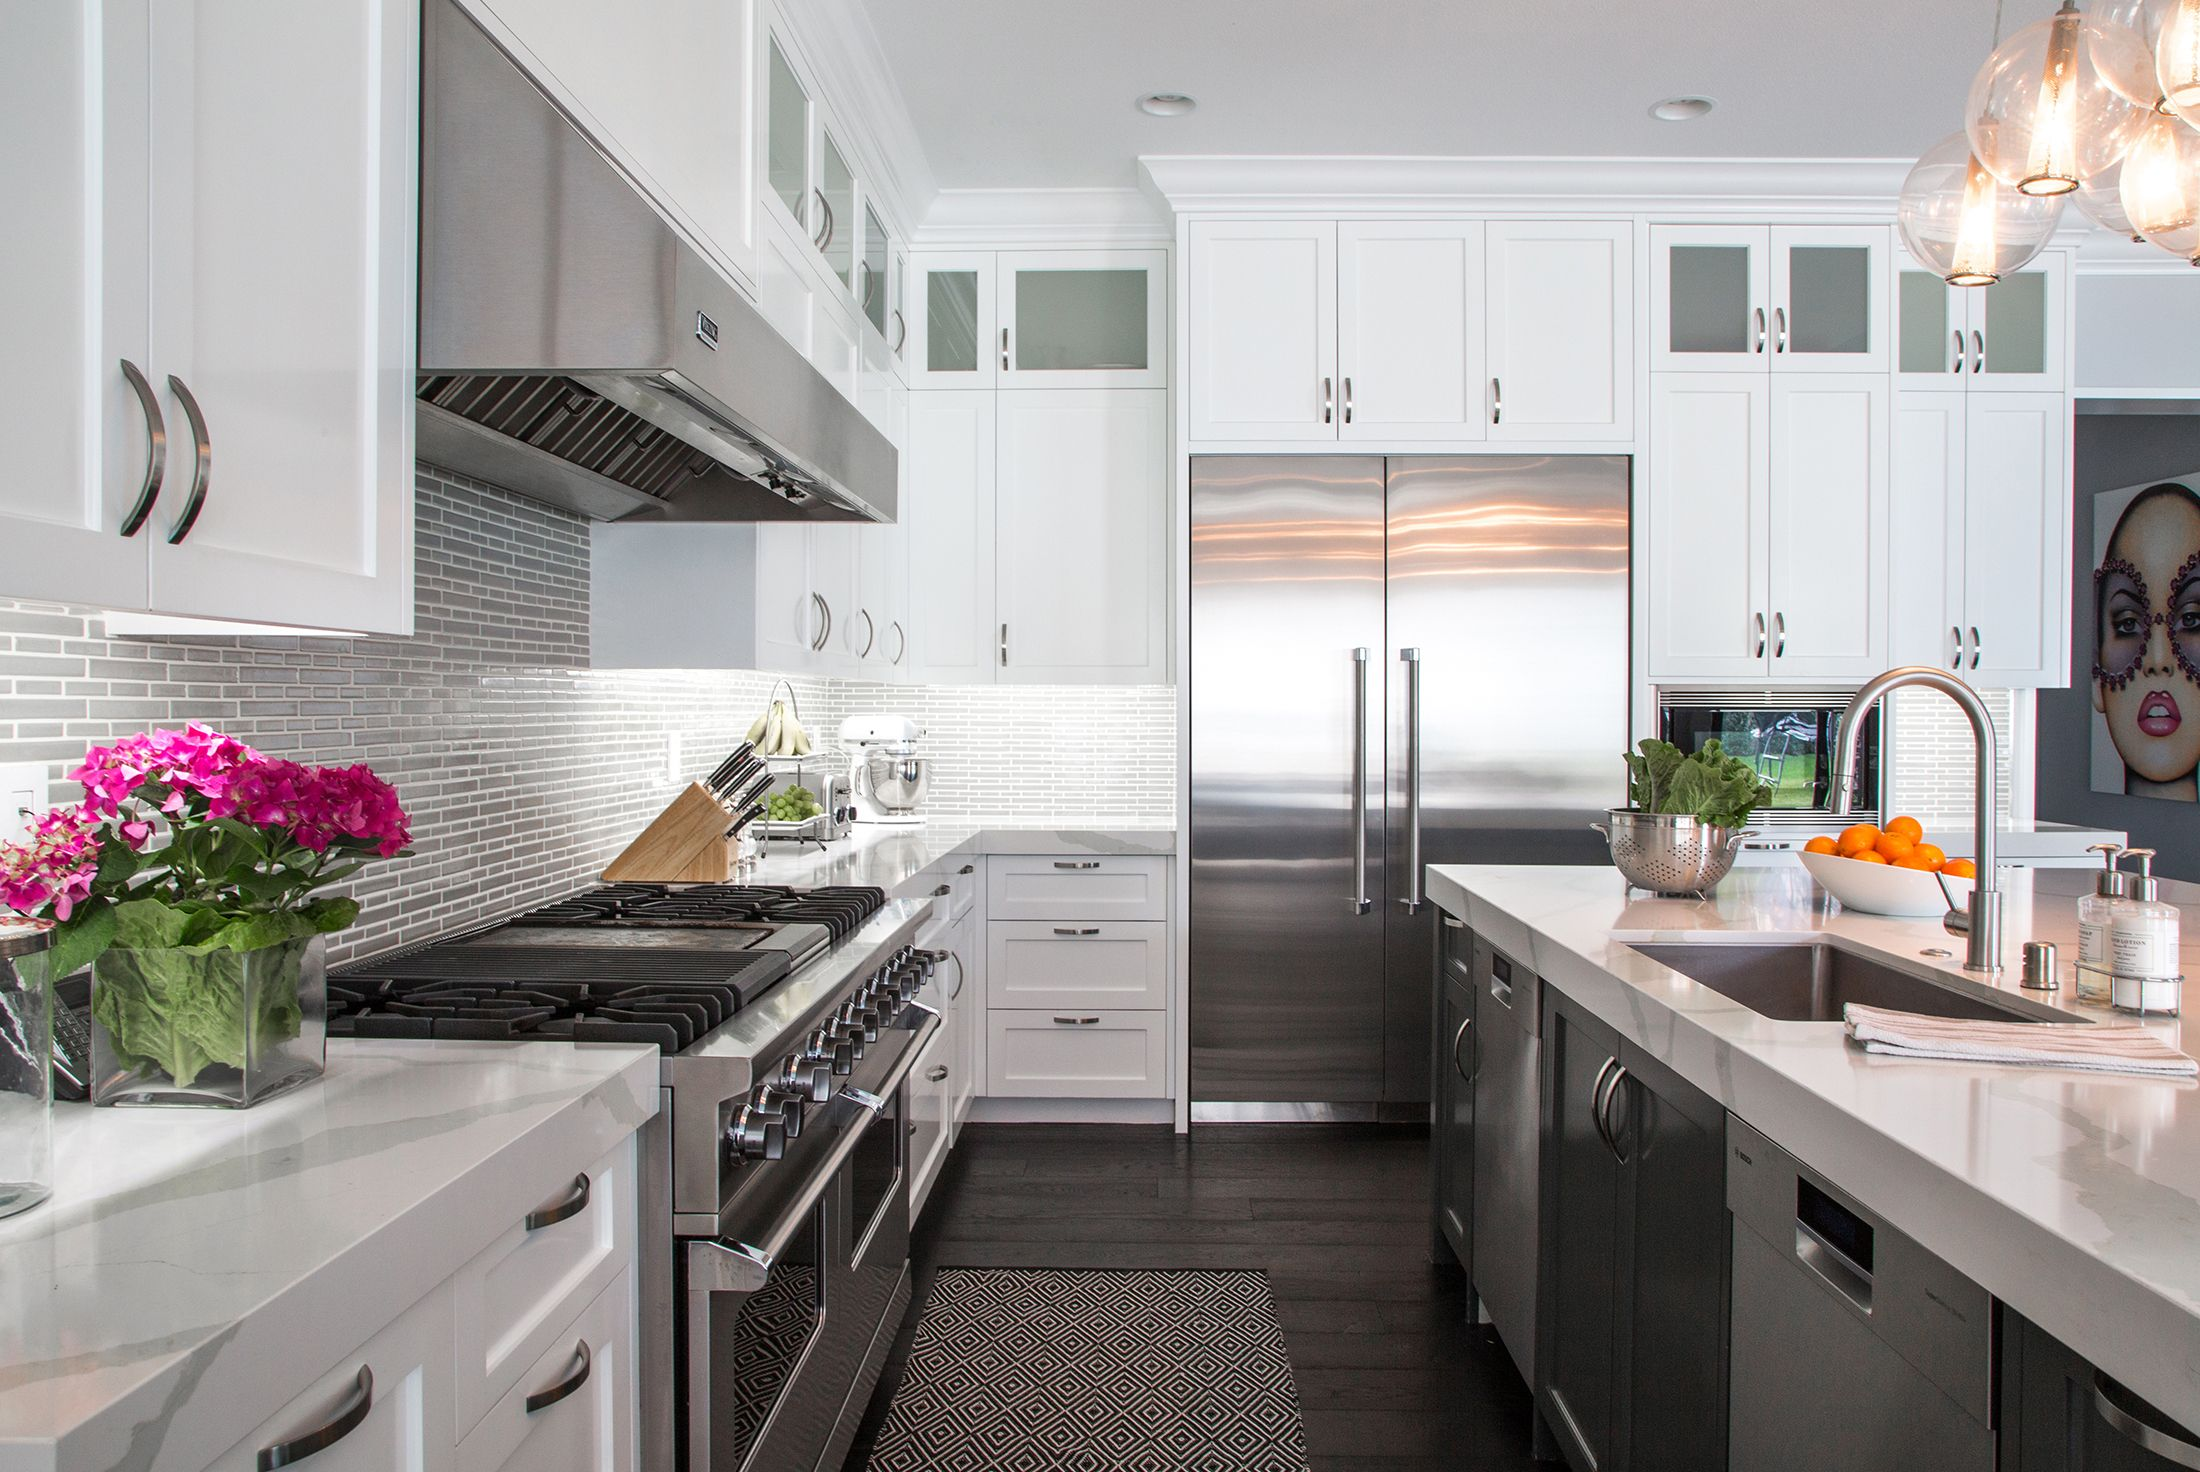 50 White Kitchen Cabinets To Brighten Up Your Cooking Space ...